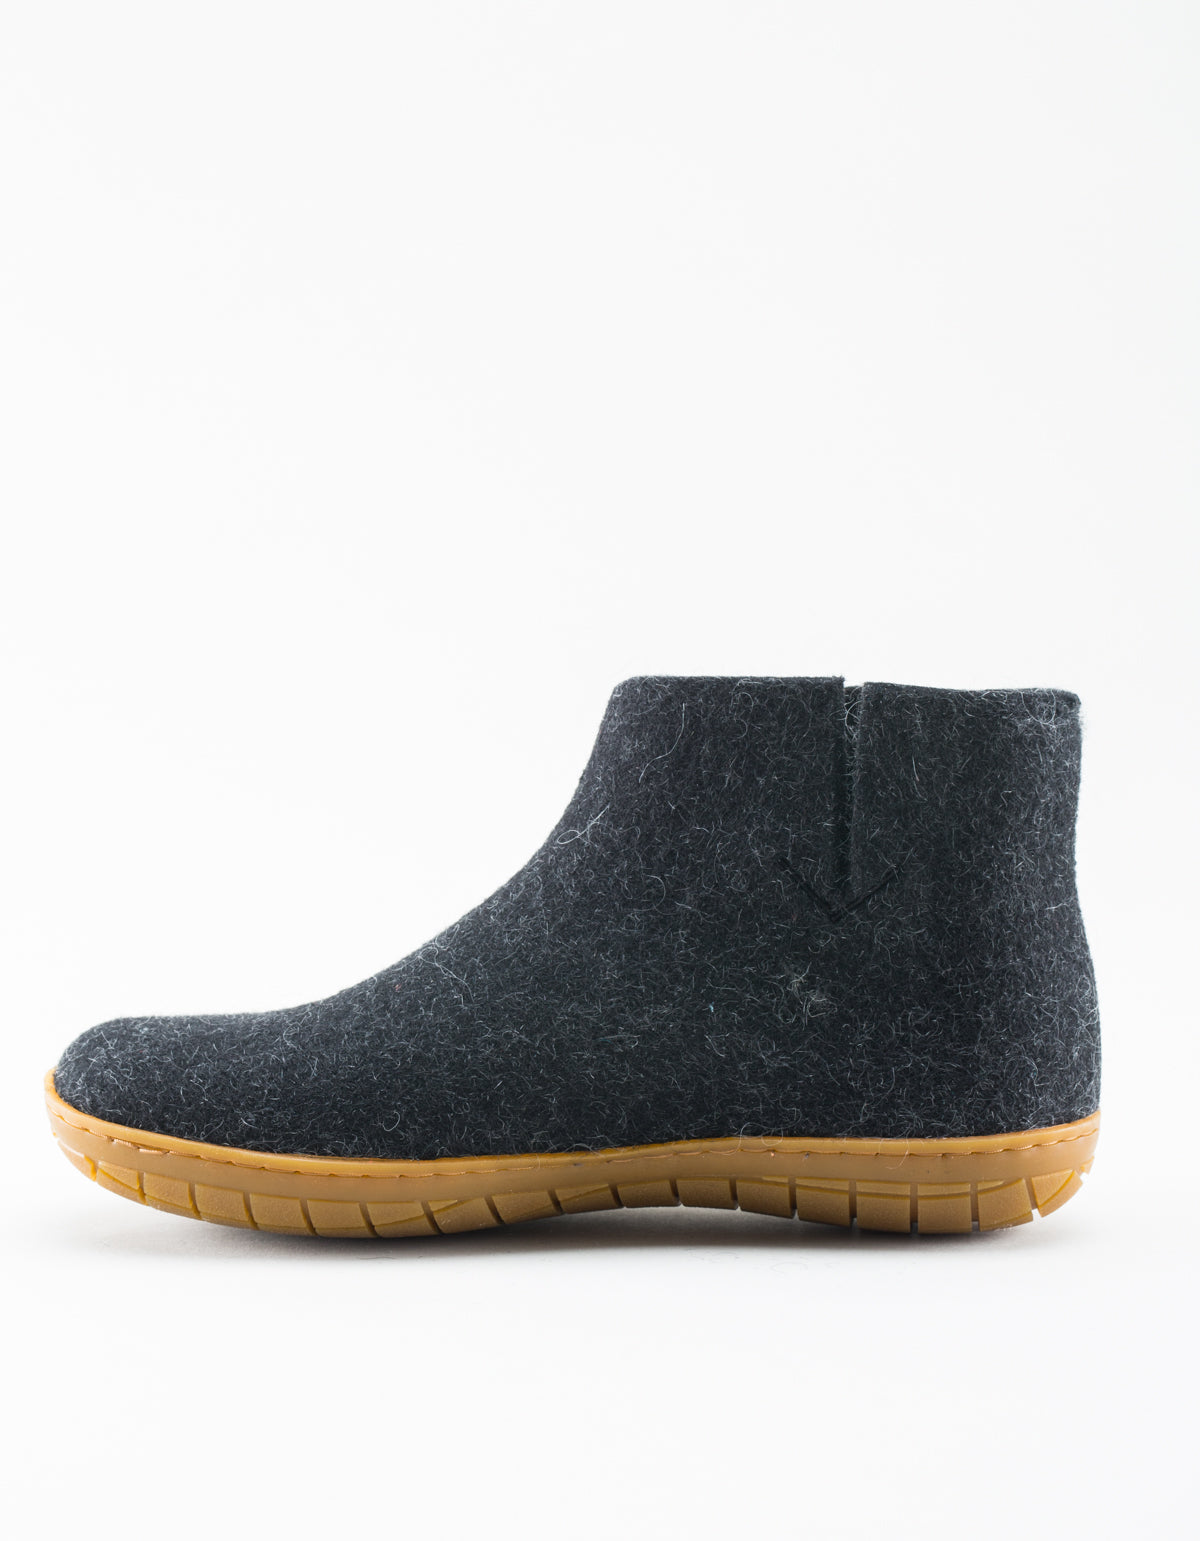 c0e87a8db83 Glerups womens wool boot rubber sole charcoal still life jpg 1200x1541 Rubber  wedge sole